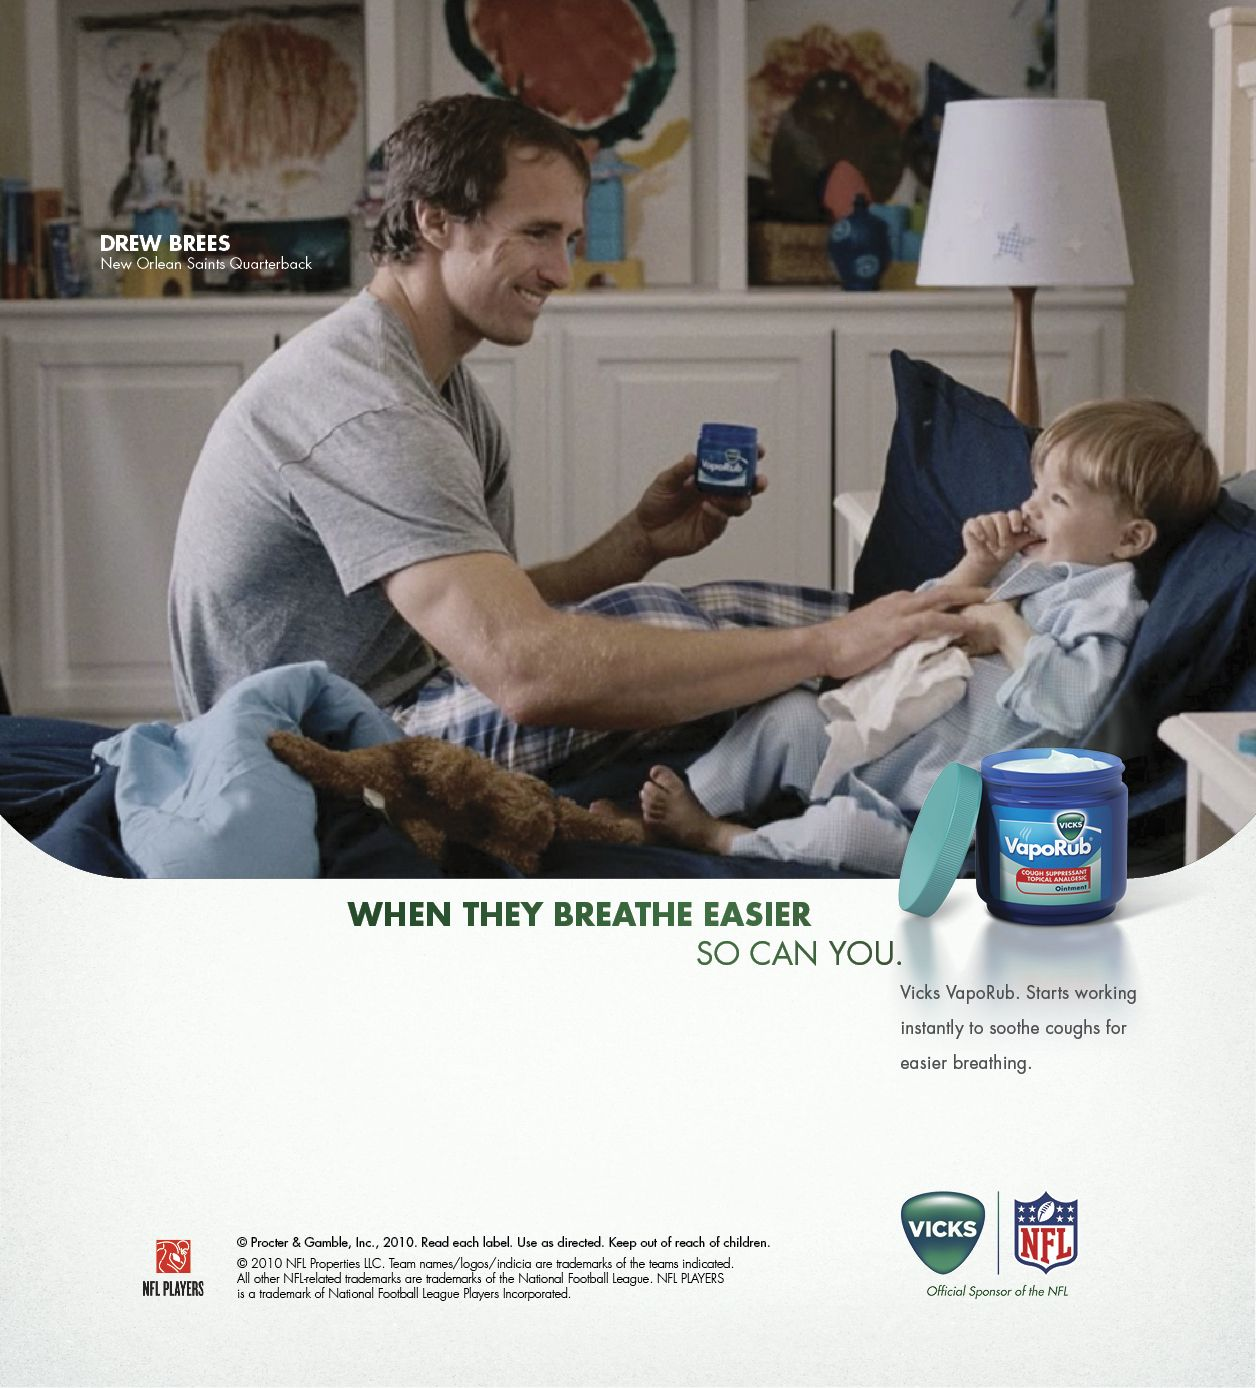 This Vick's ad, featuring NFL Quarterback Drew Brees and